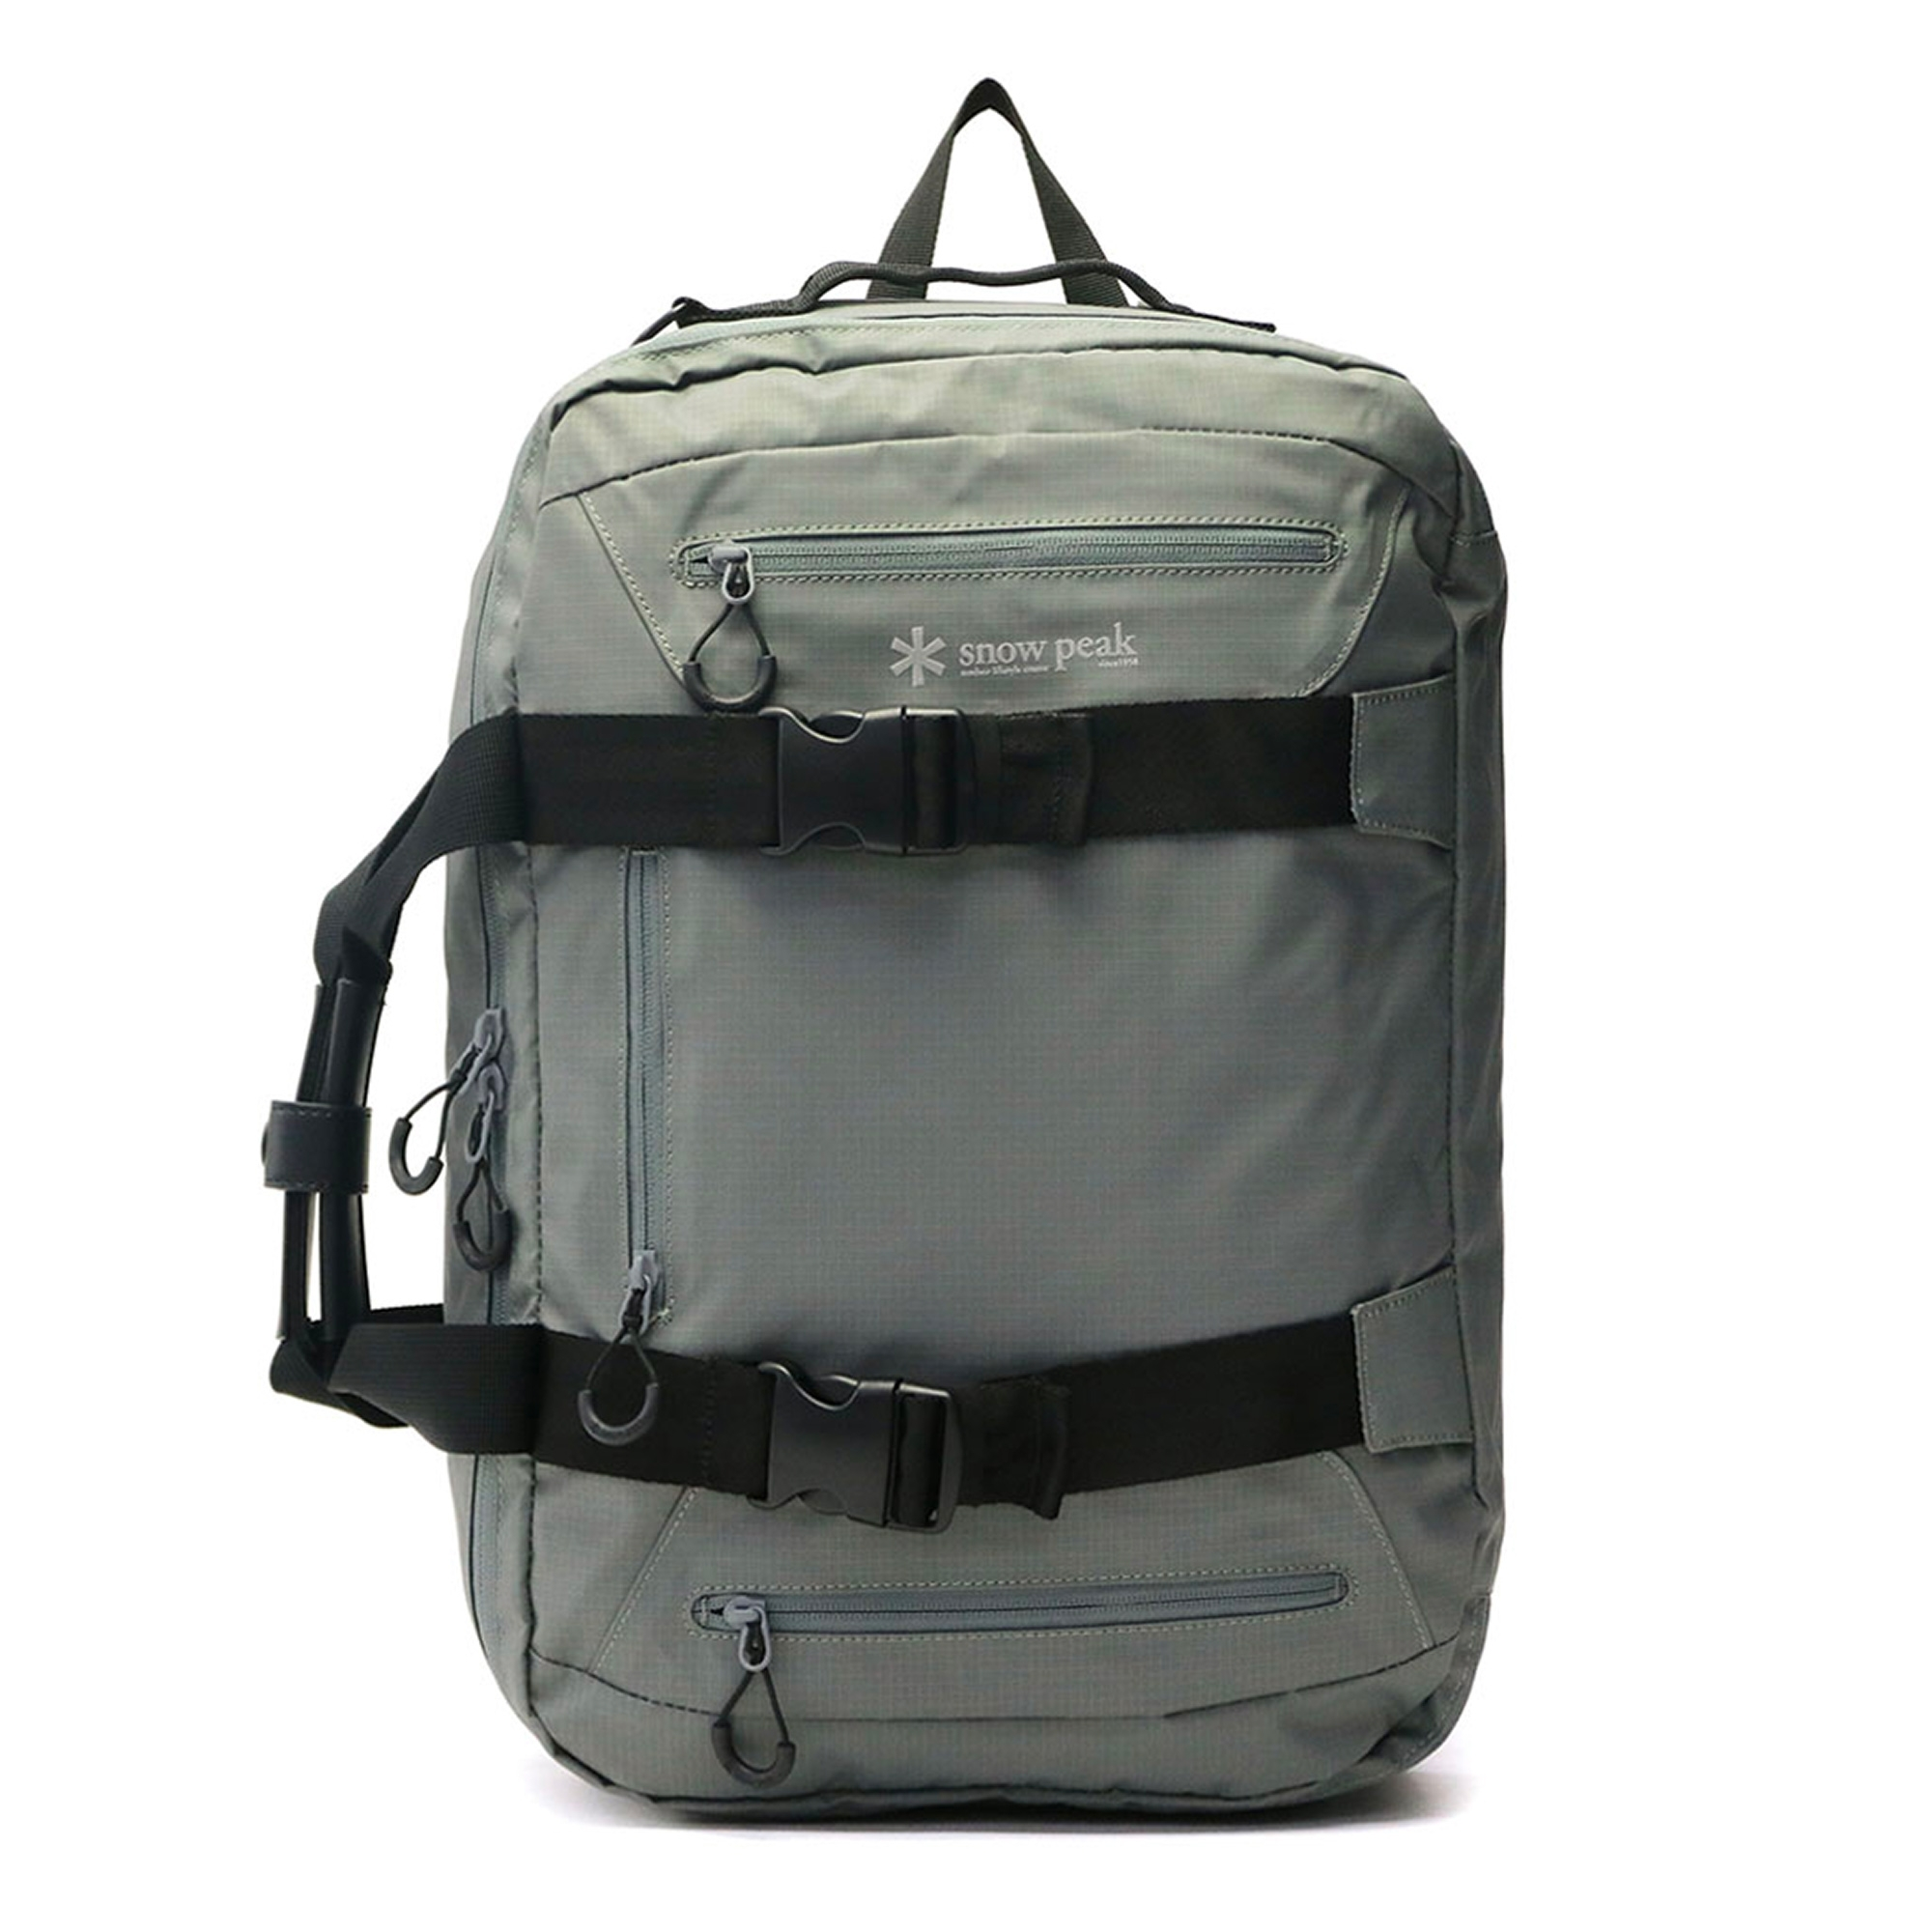 Snow peak bag